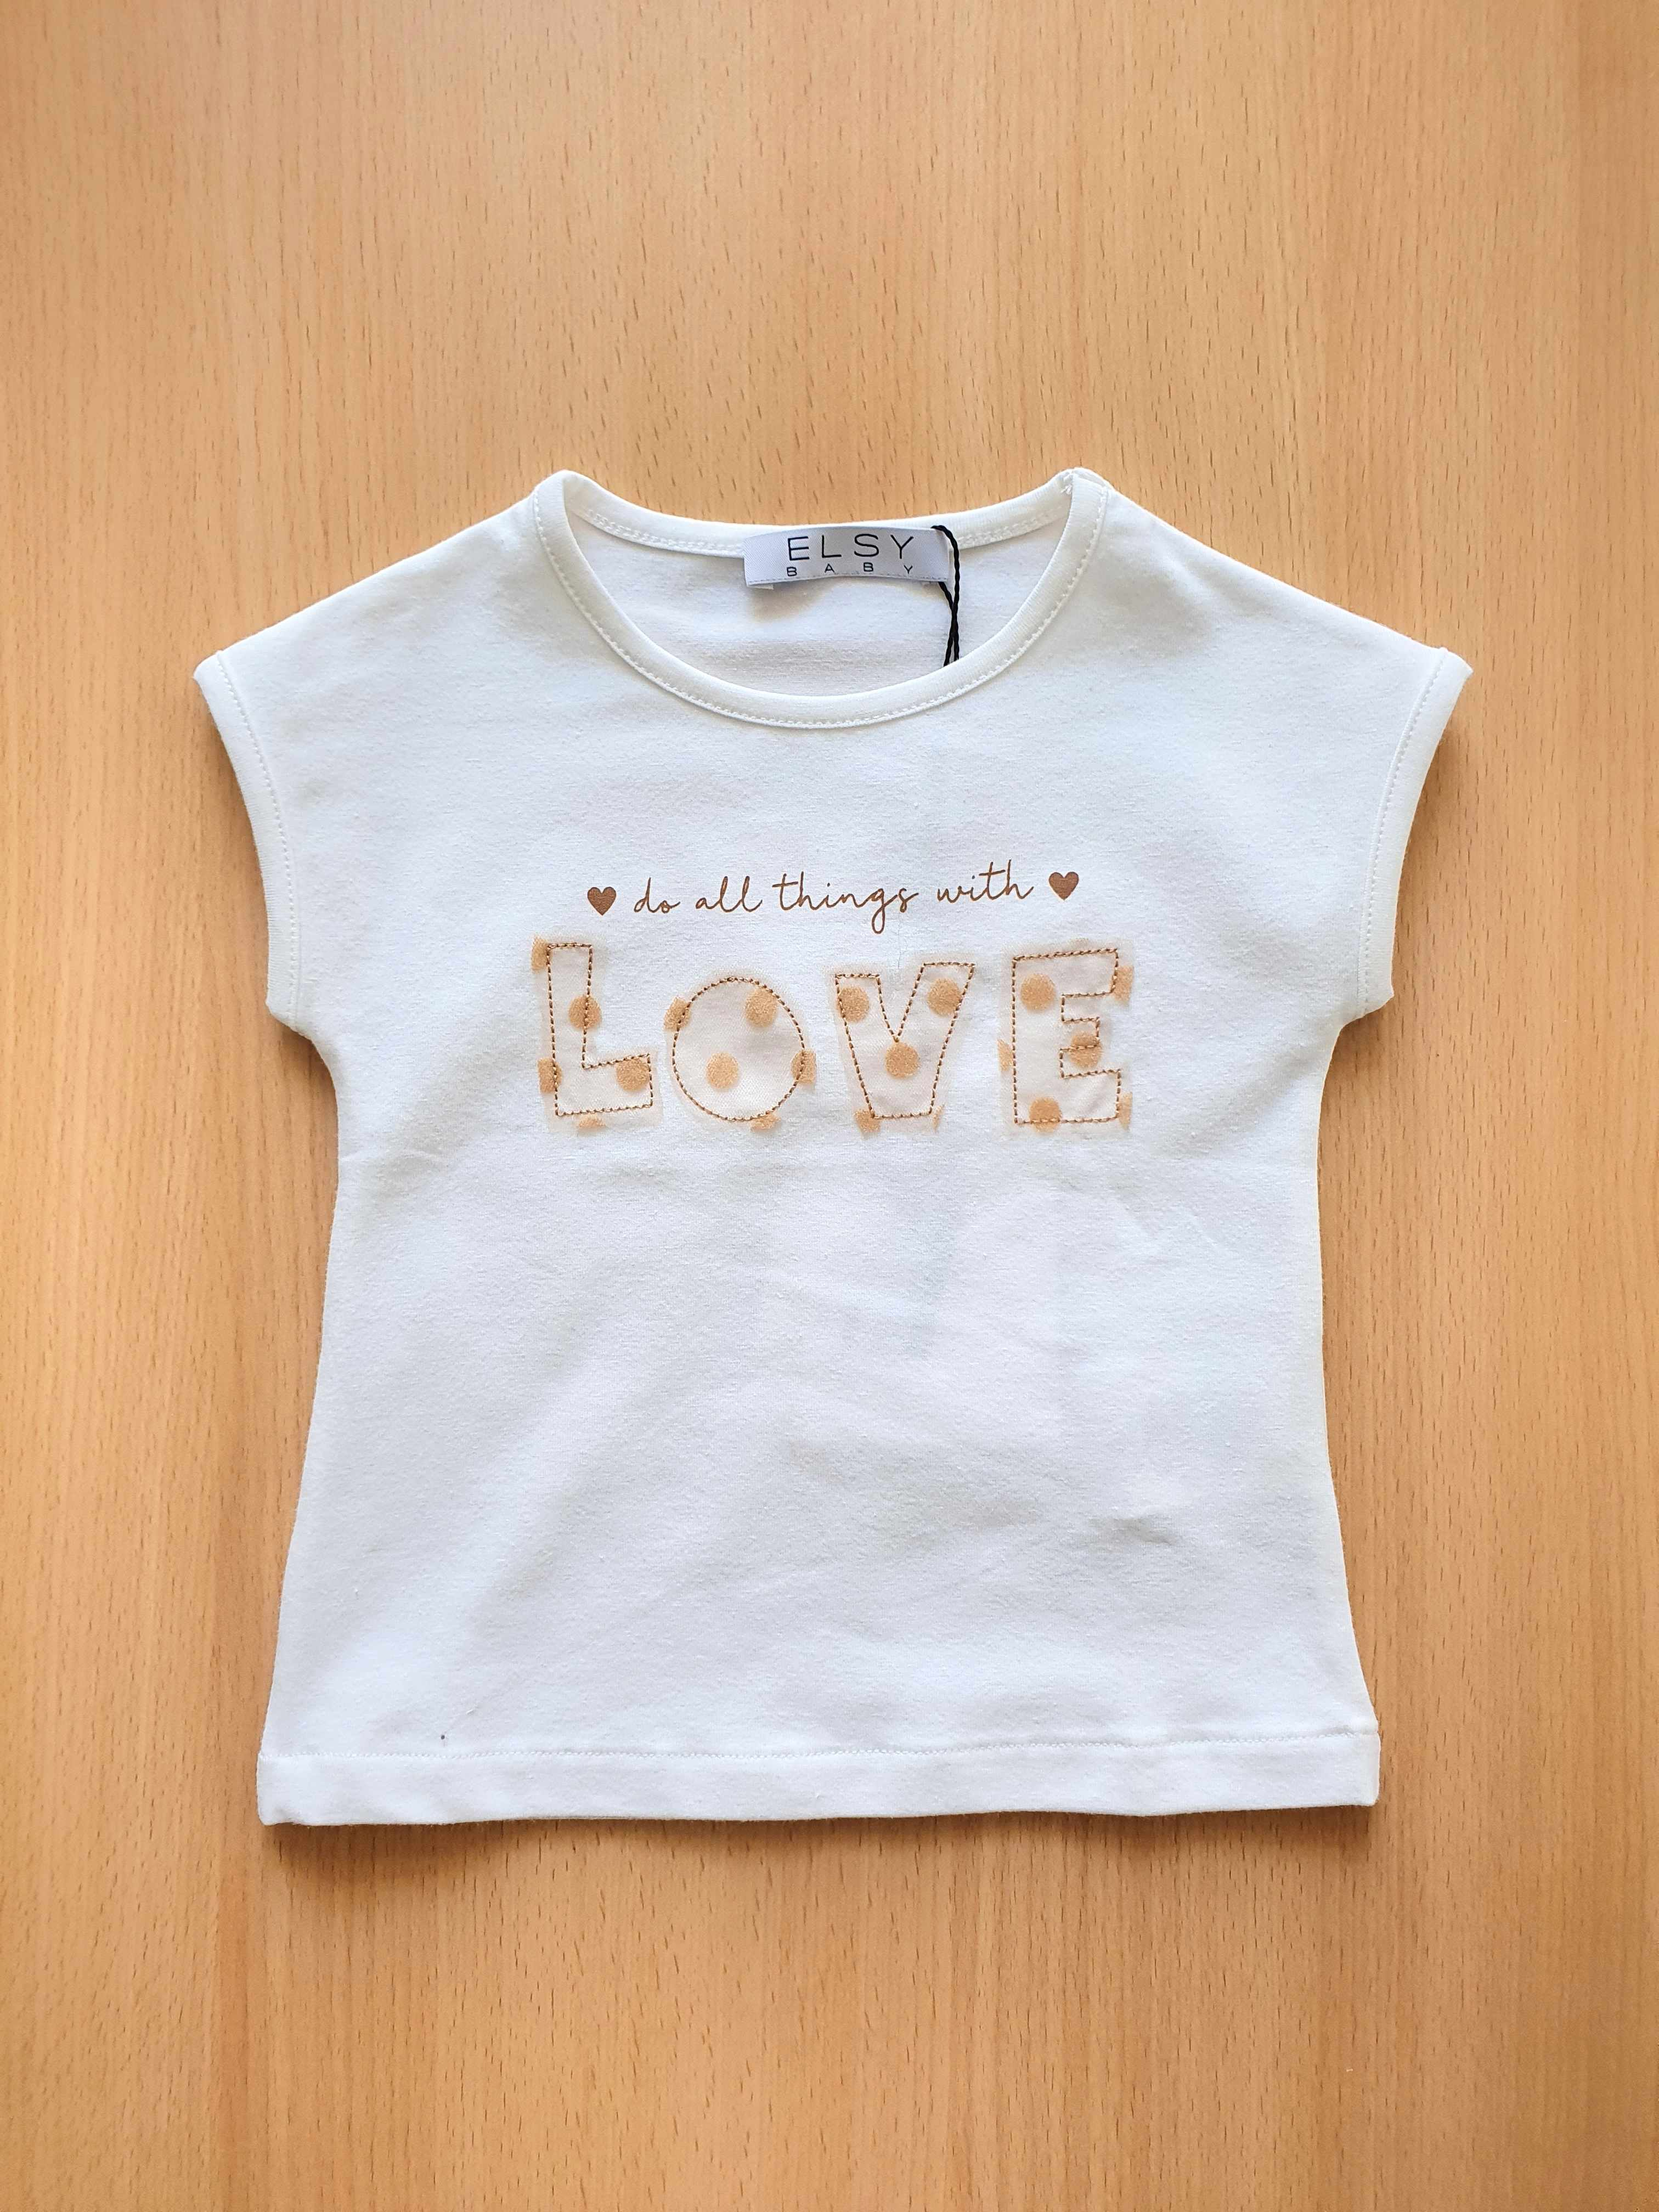 t-shirt in cotone bianca stampa frontale elsy | T-shirt | REESEUNI